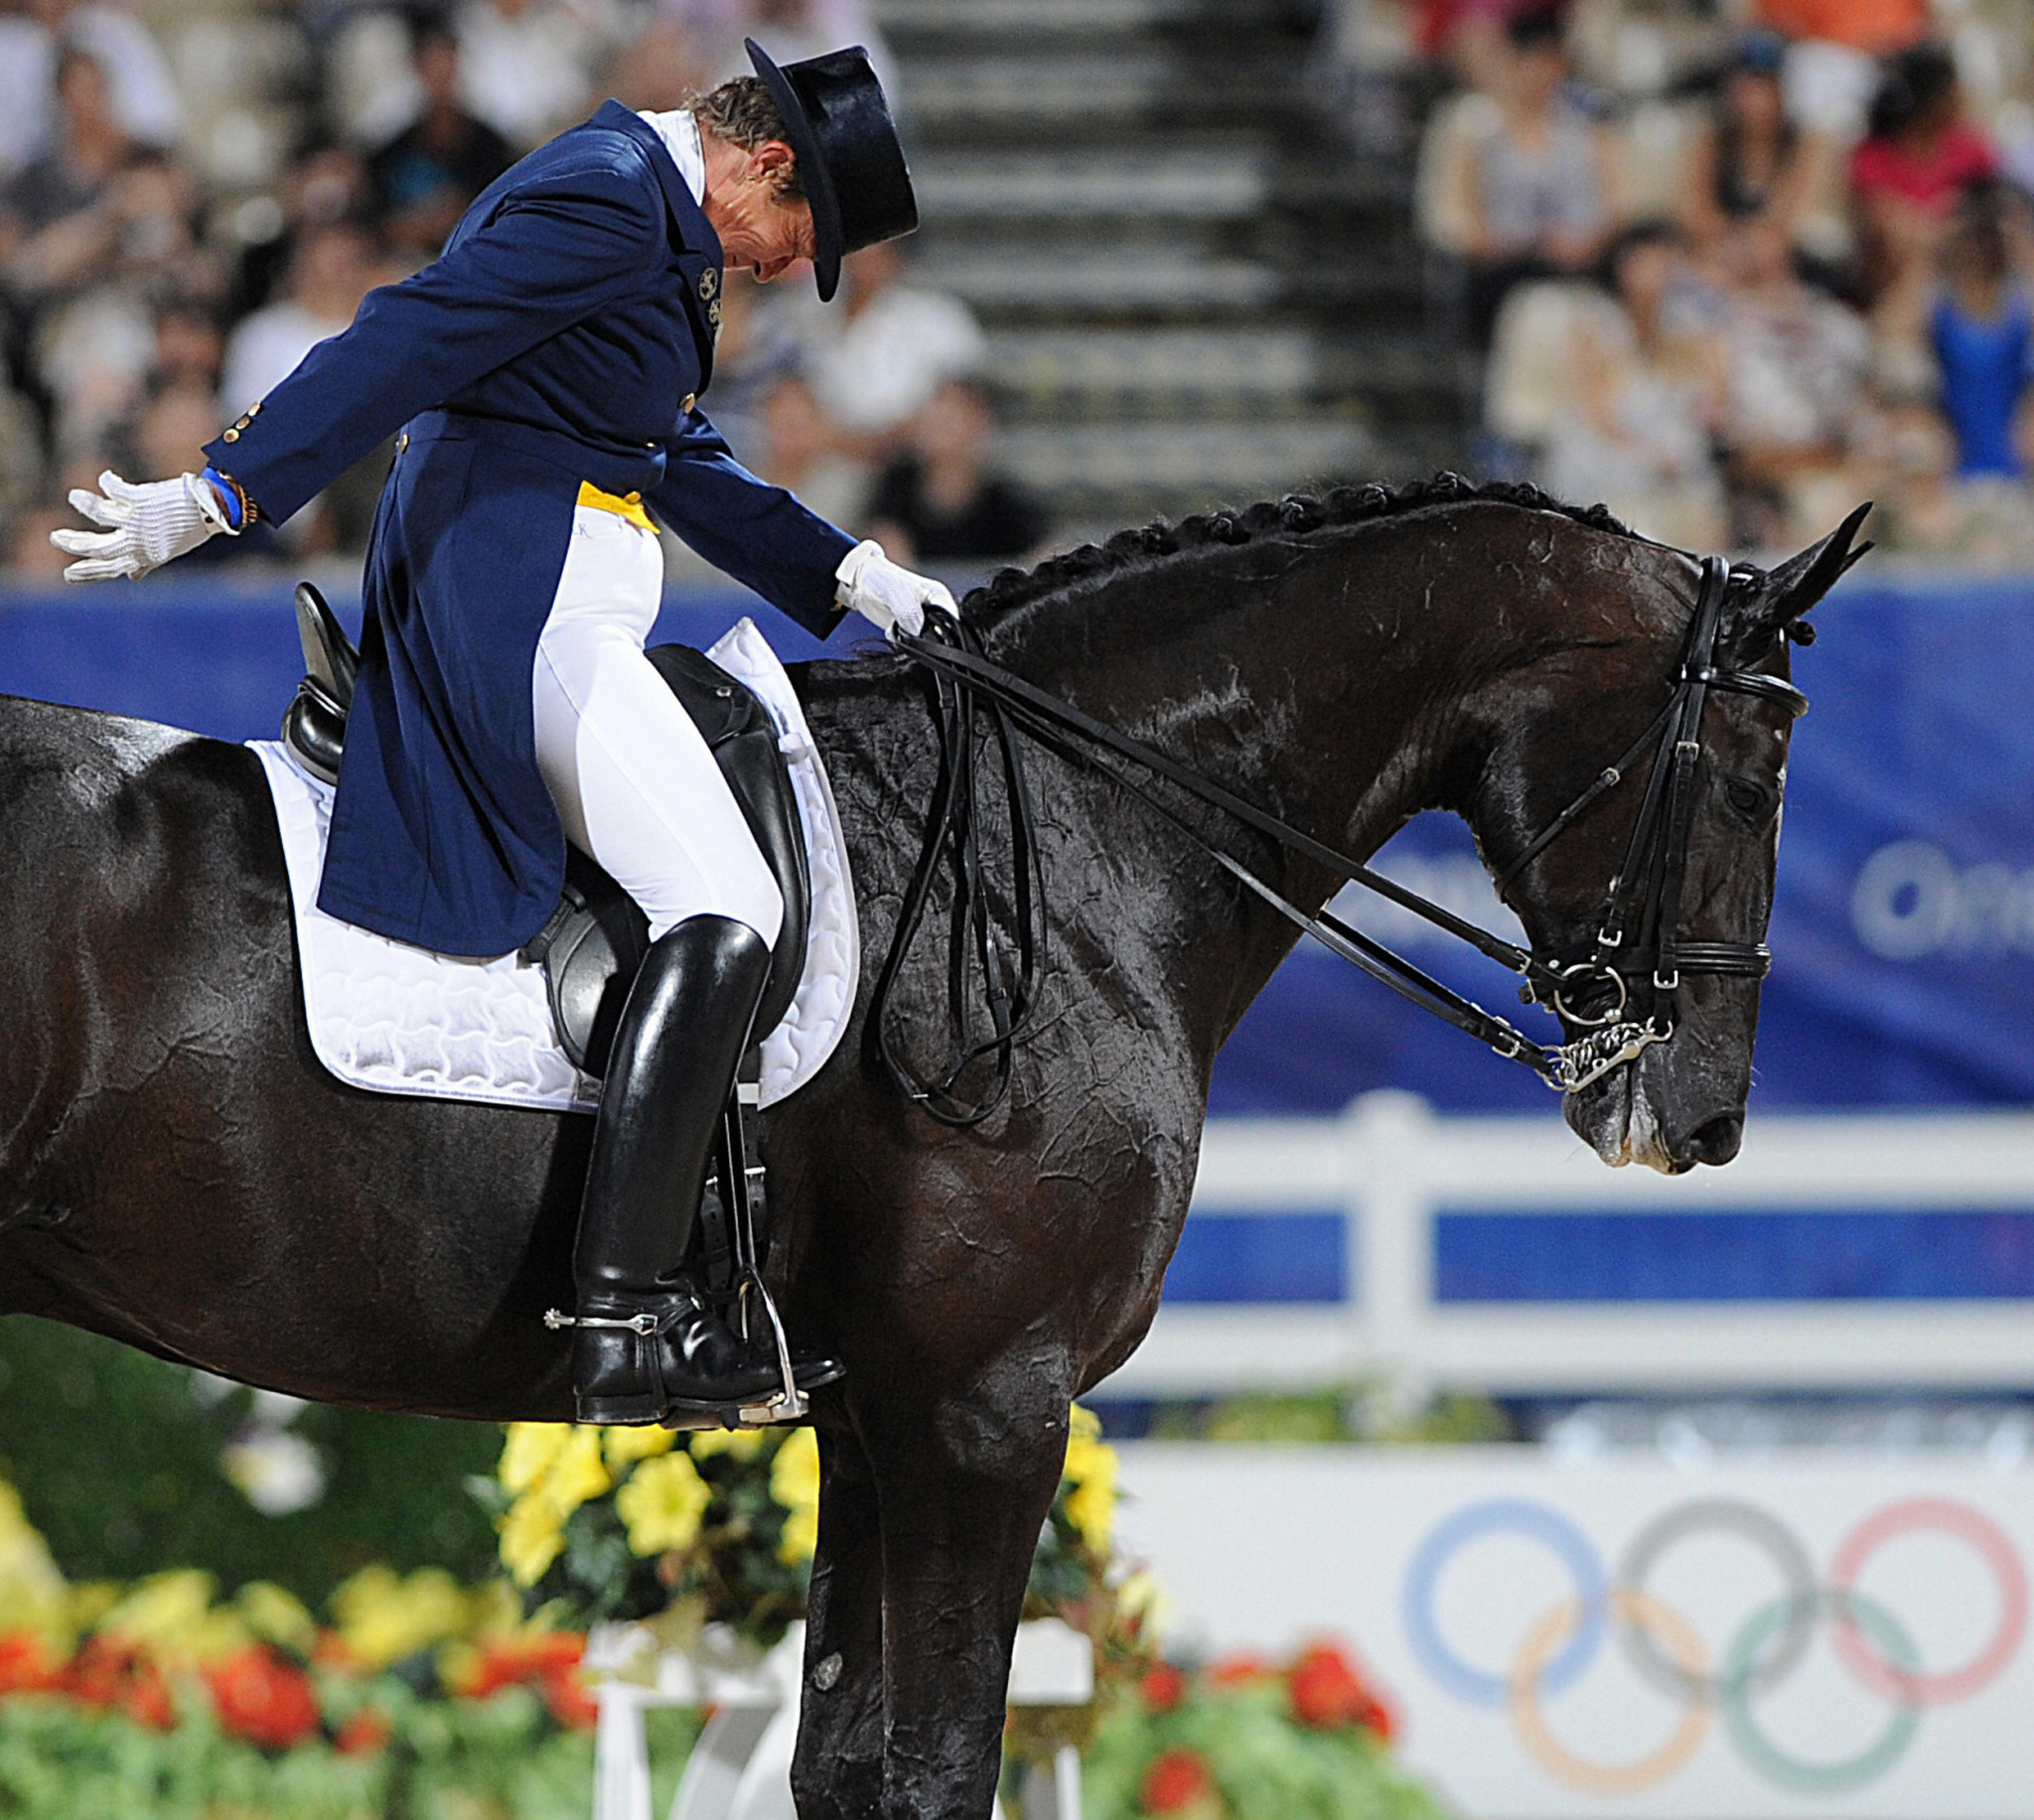 International Dressage Riders Club President Kyra Kyrklund sent the petition to the FEI ©Getty Images